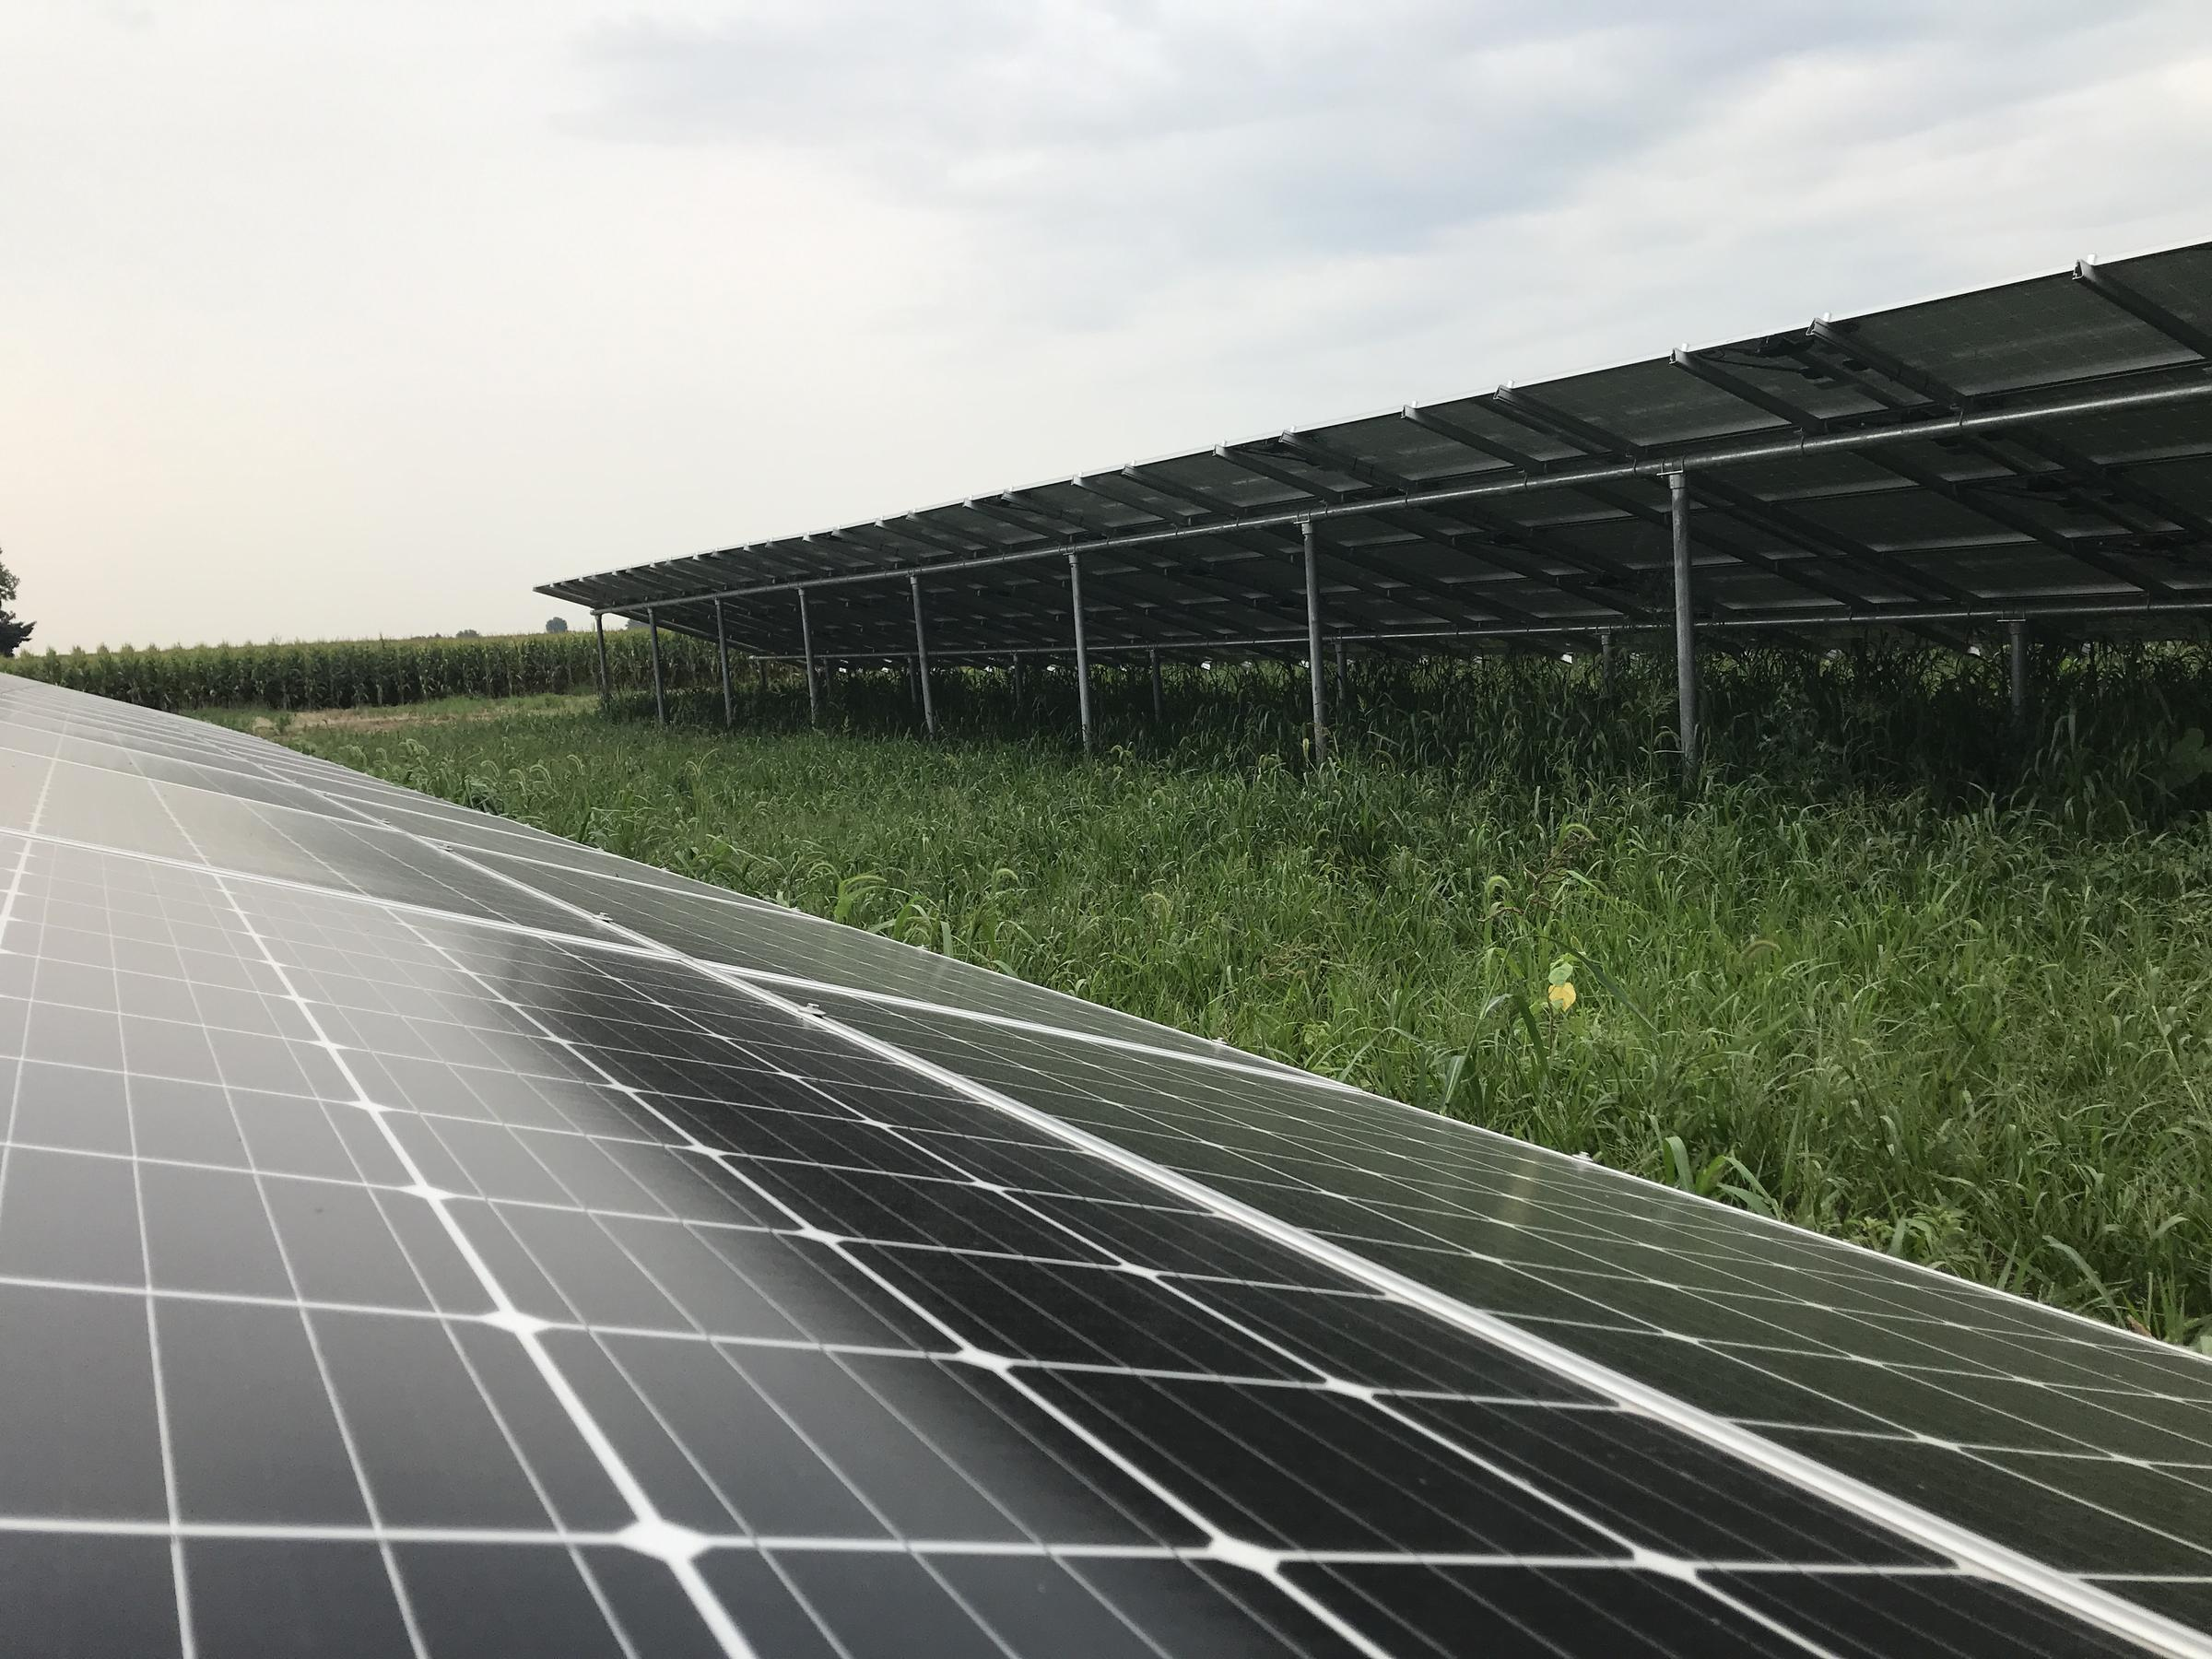 Banks of solar panels are becoming a more common sight across Illinois (photo courtesy of WNIJ)